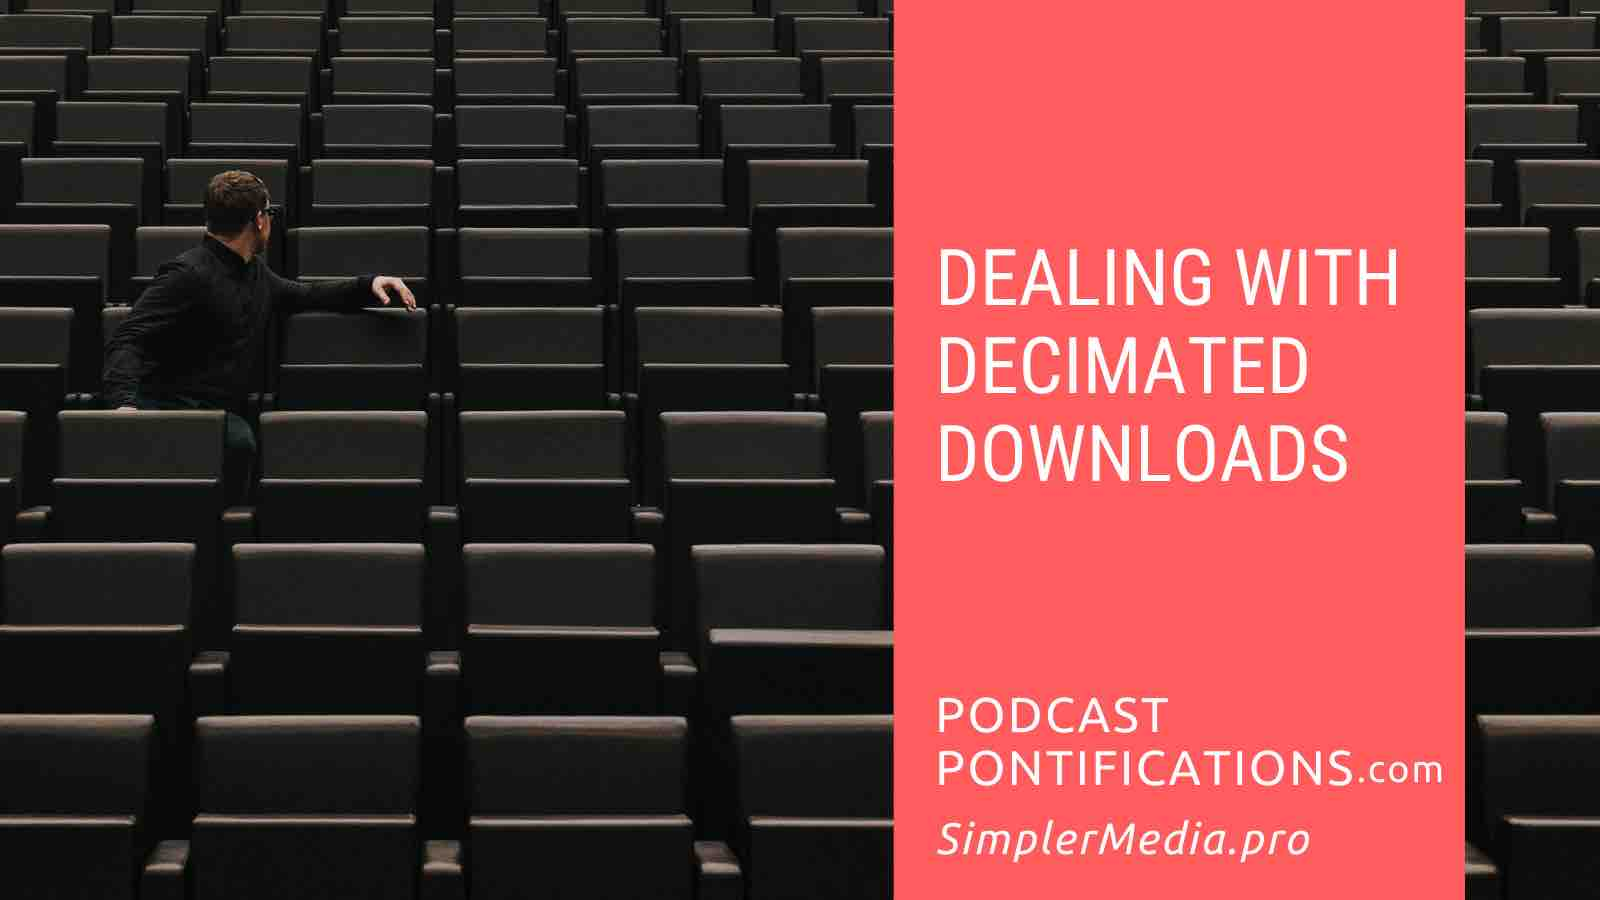 Dealing With Decimated Downloads